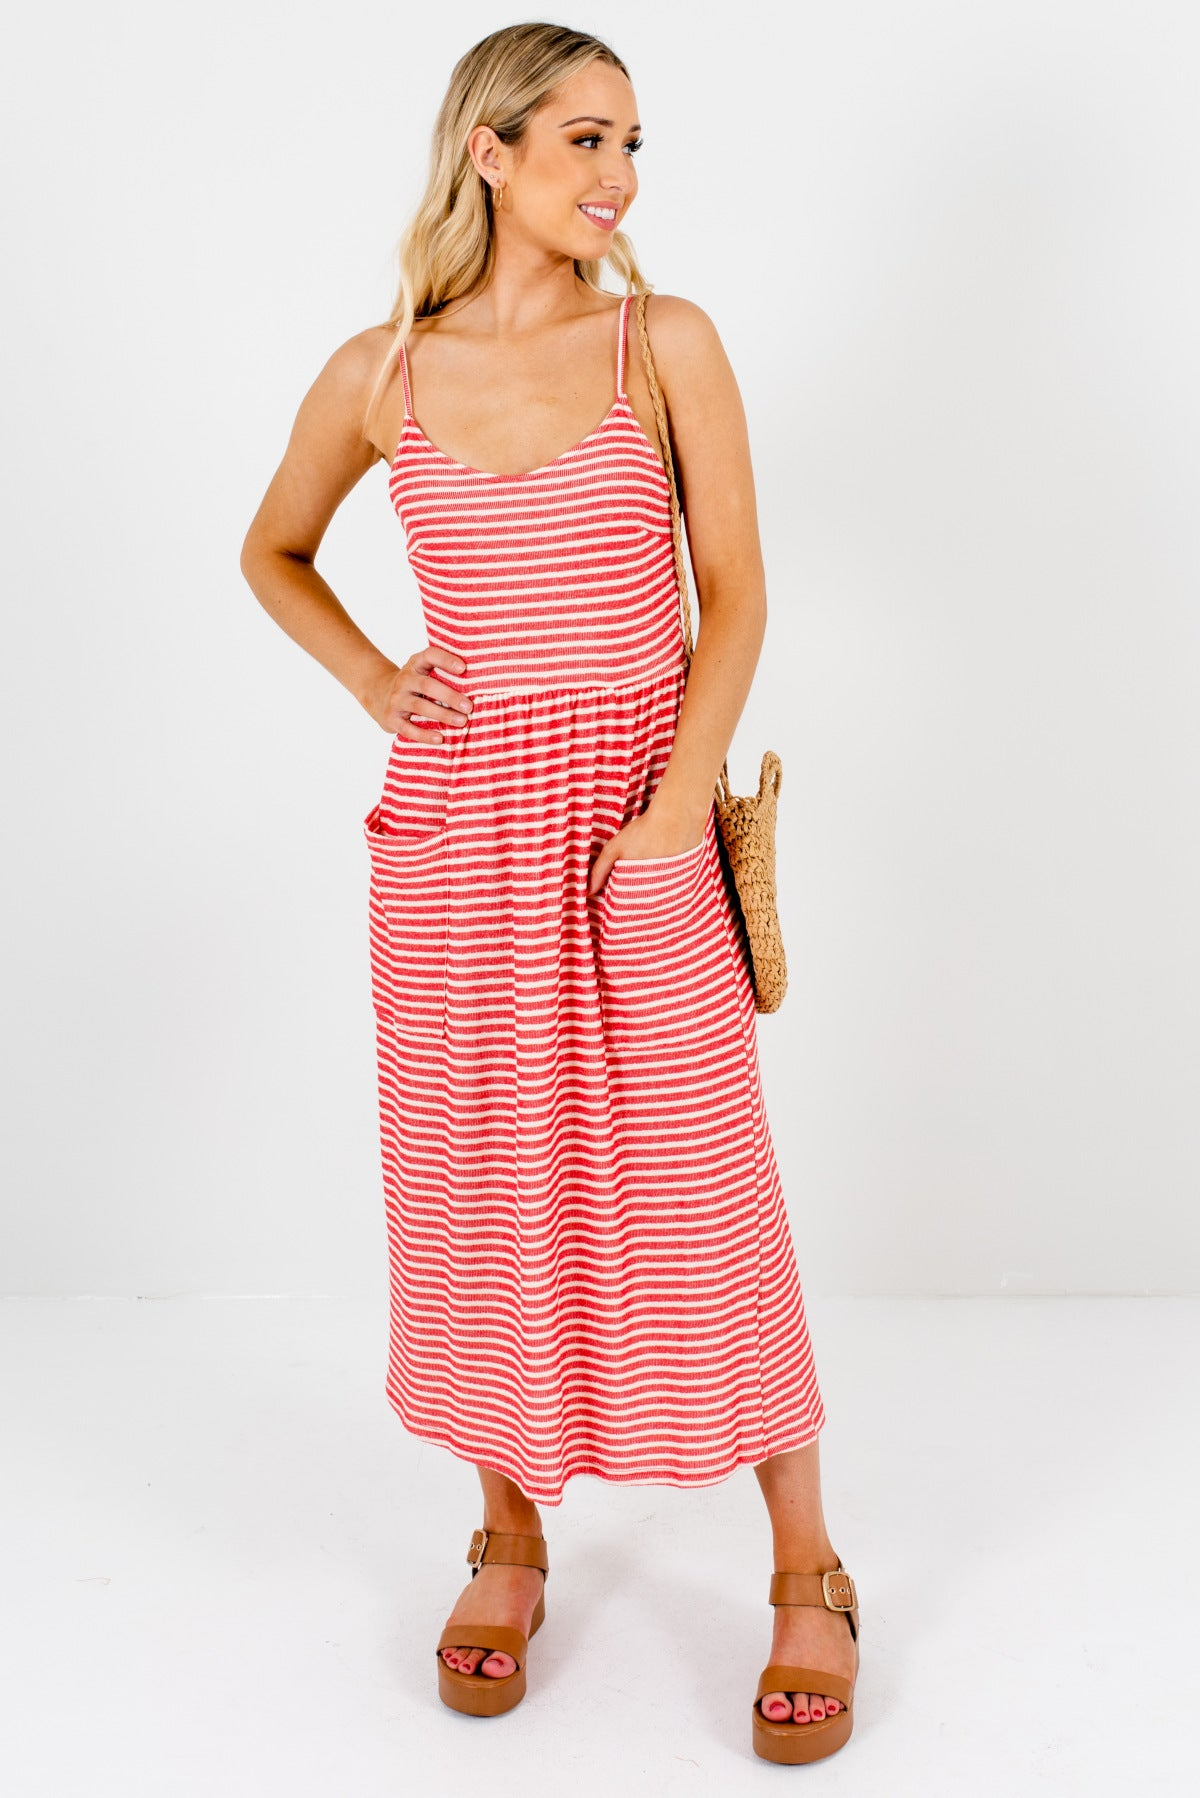 Red and Cream Striped Patterned Boutique Midi Length Dresses for Women